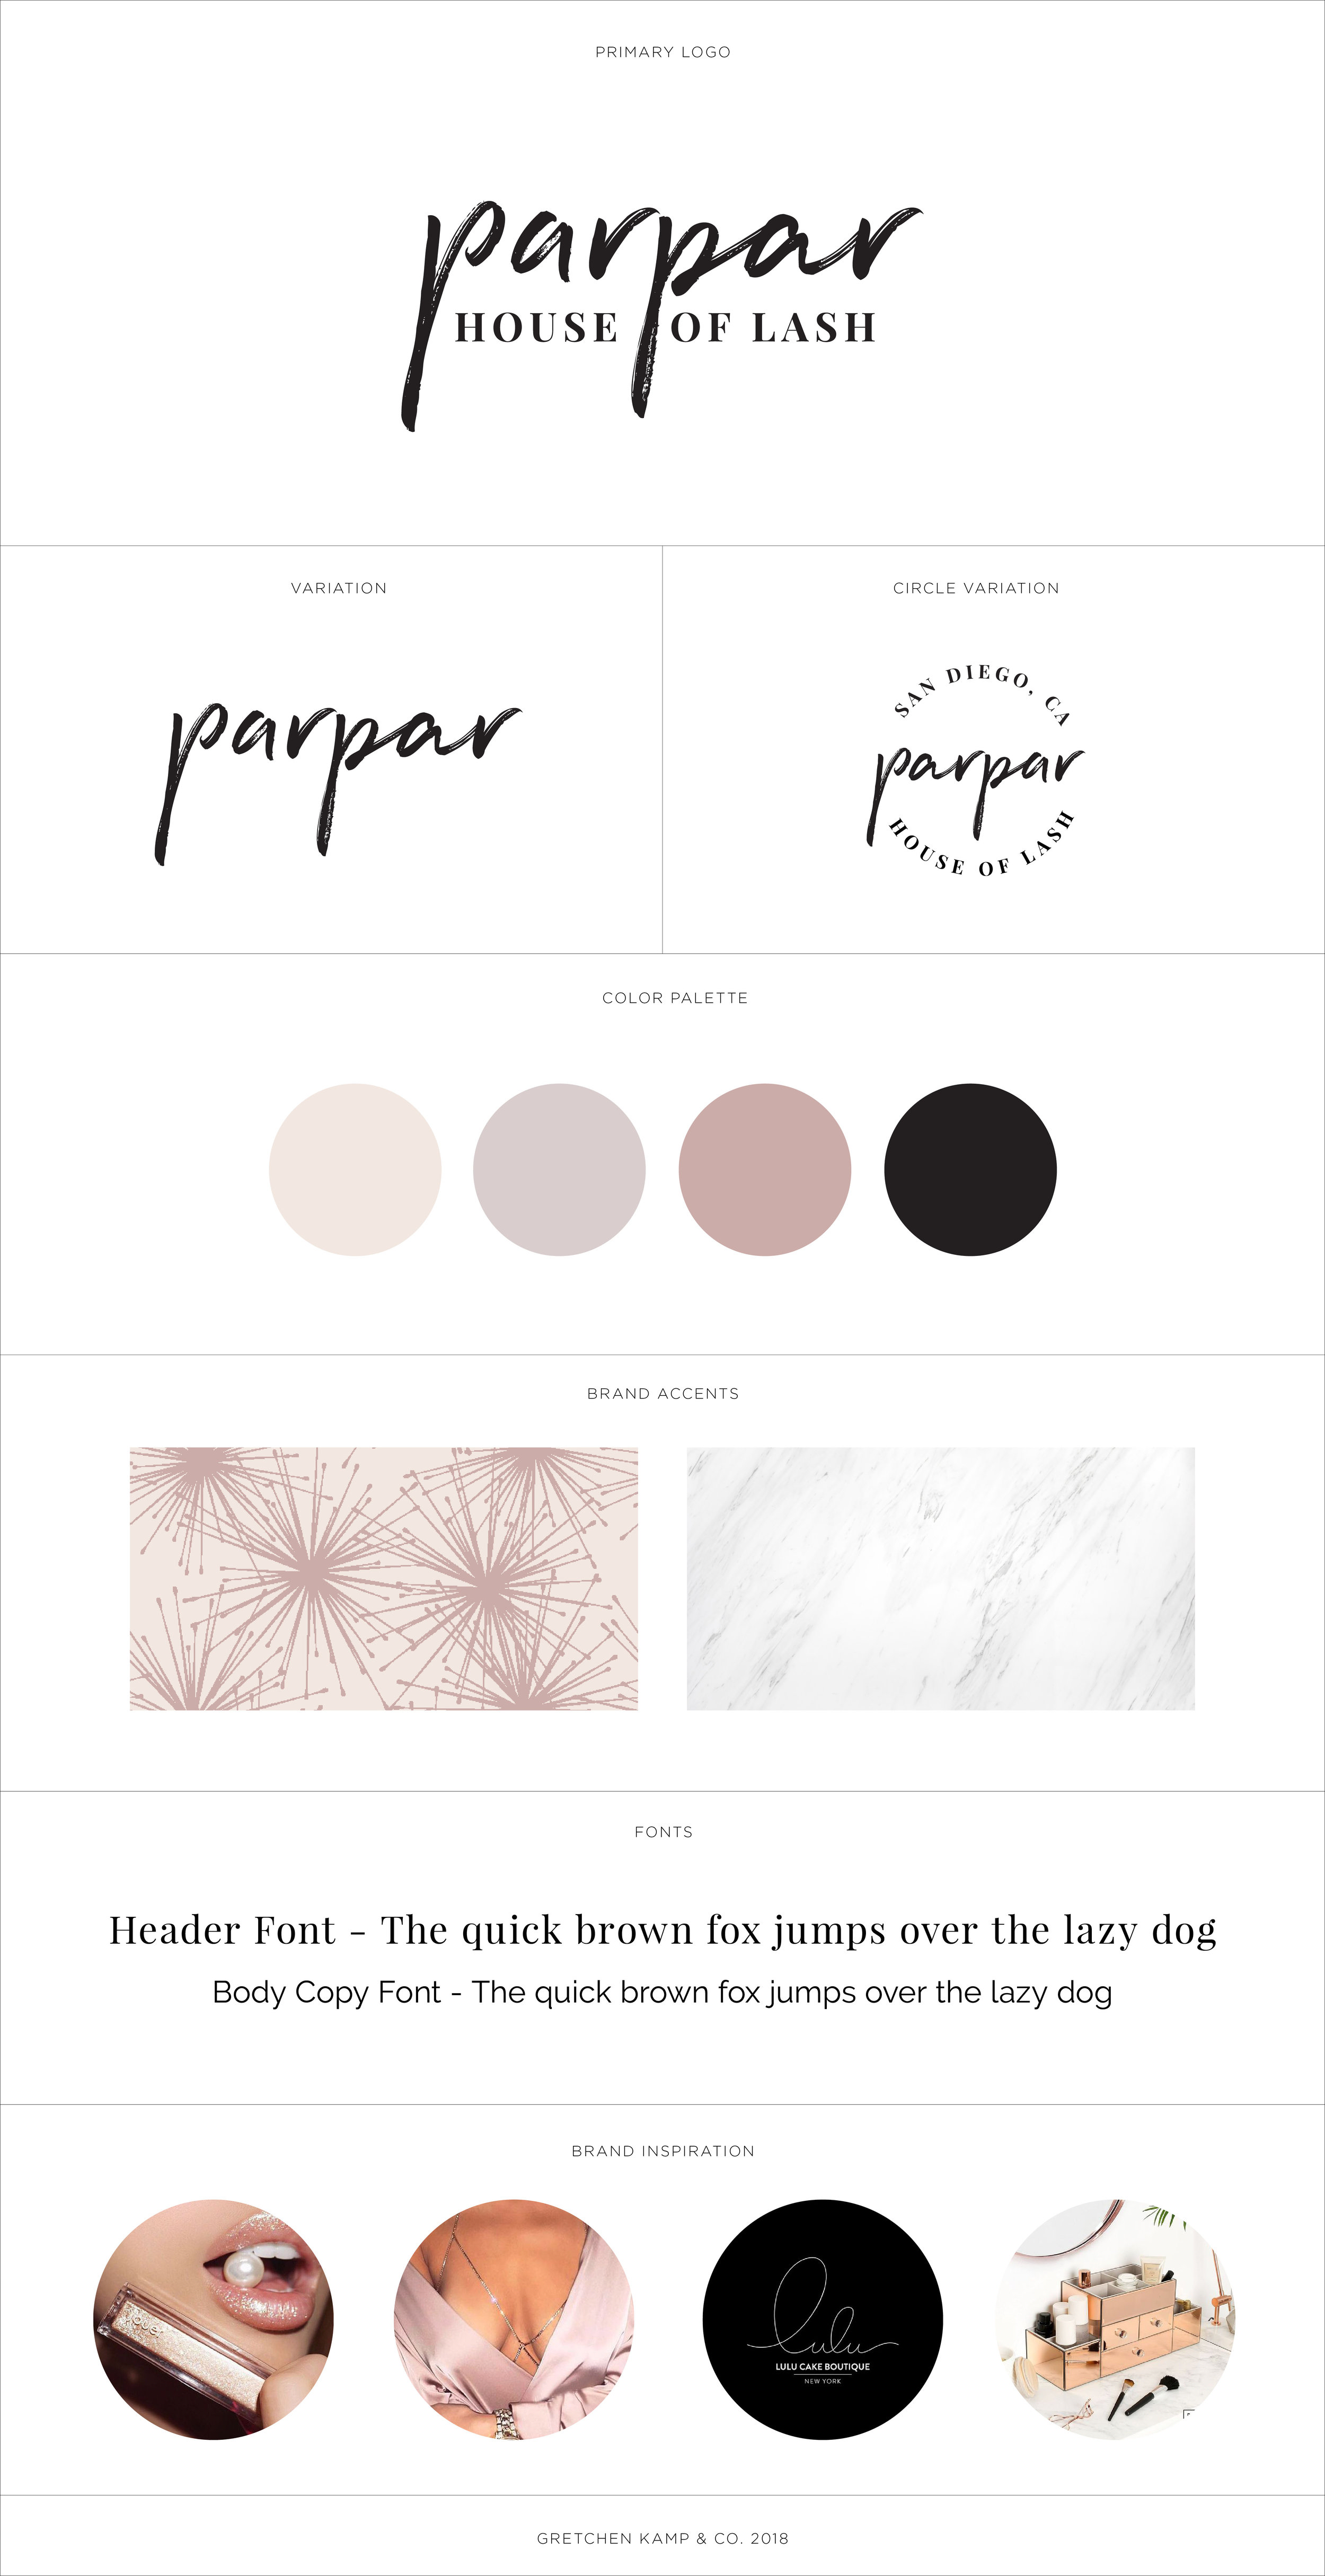 Brand Identiy for a lash studio by Gretchen Kamp, branding specialist & designed based in Astoria, Queens, New York and San Diego, California